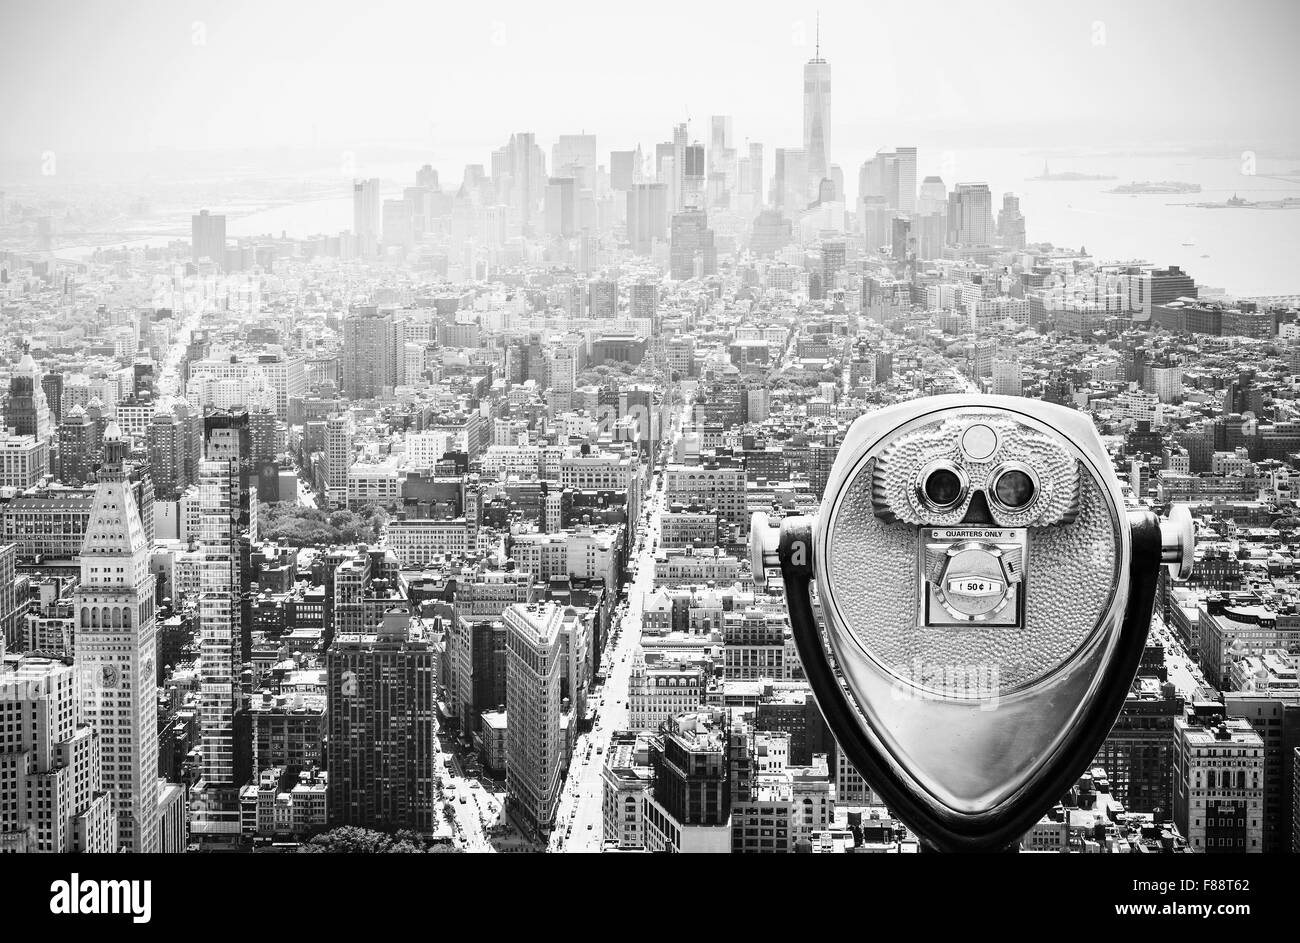 Binoculars over Manhattan Skyline, New York City, USA. - Stock Image